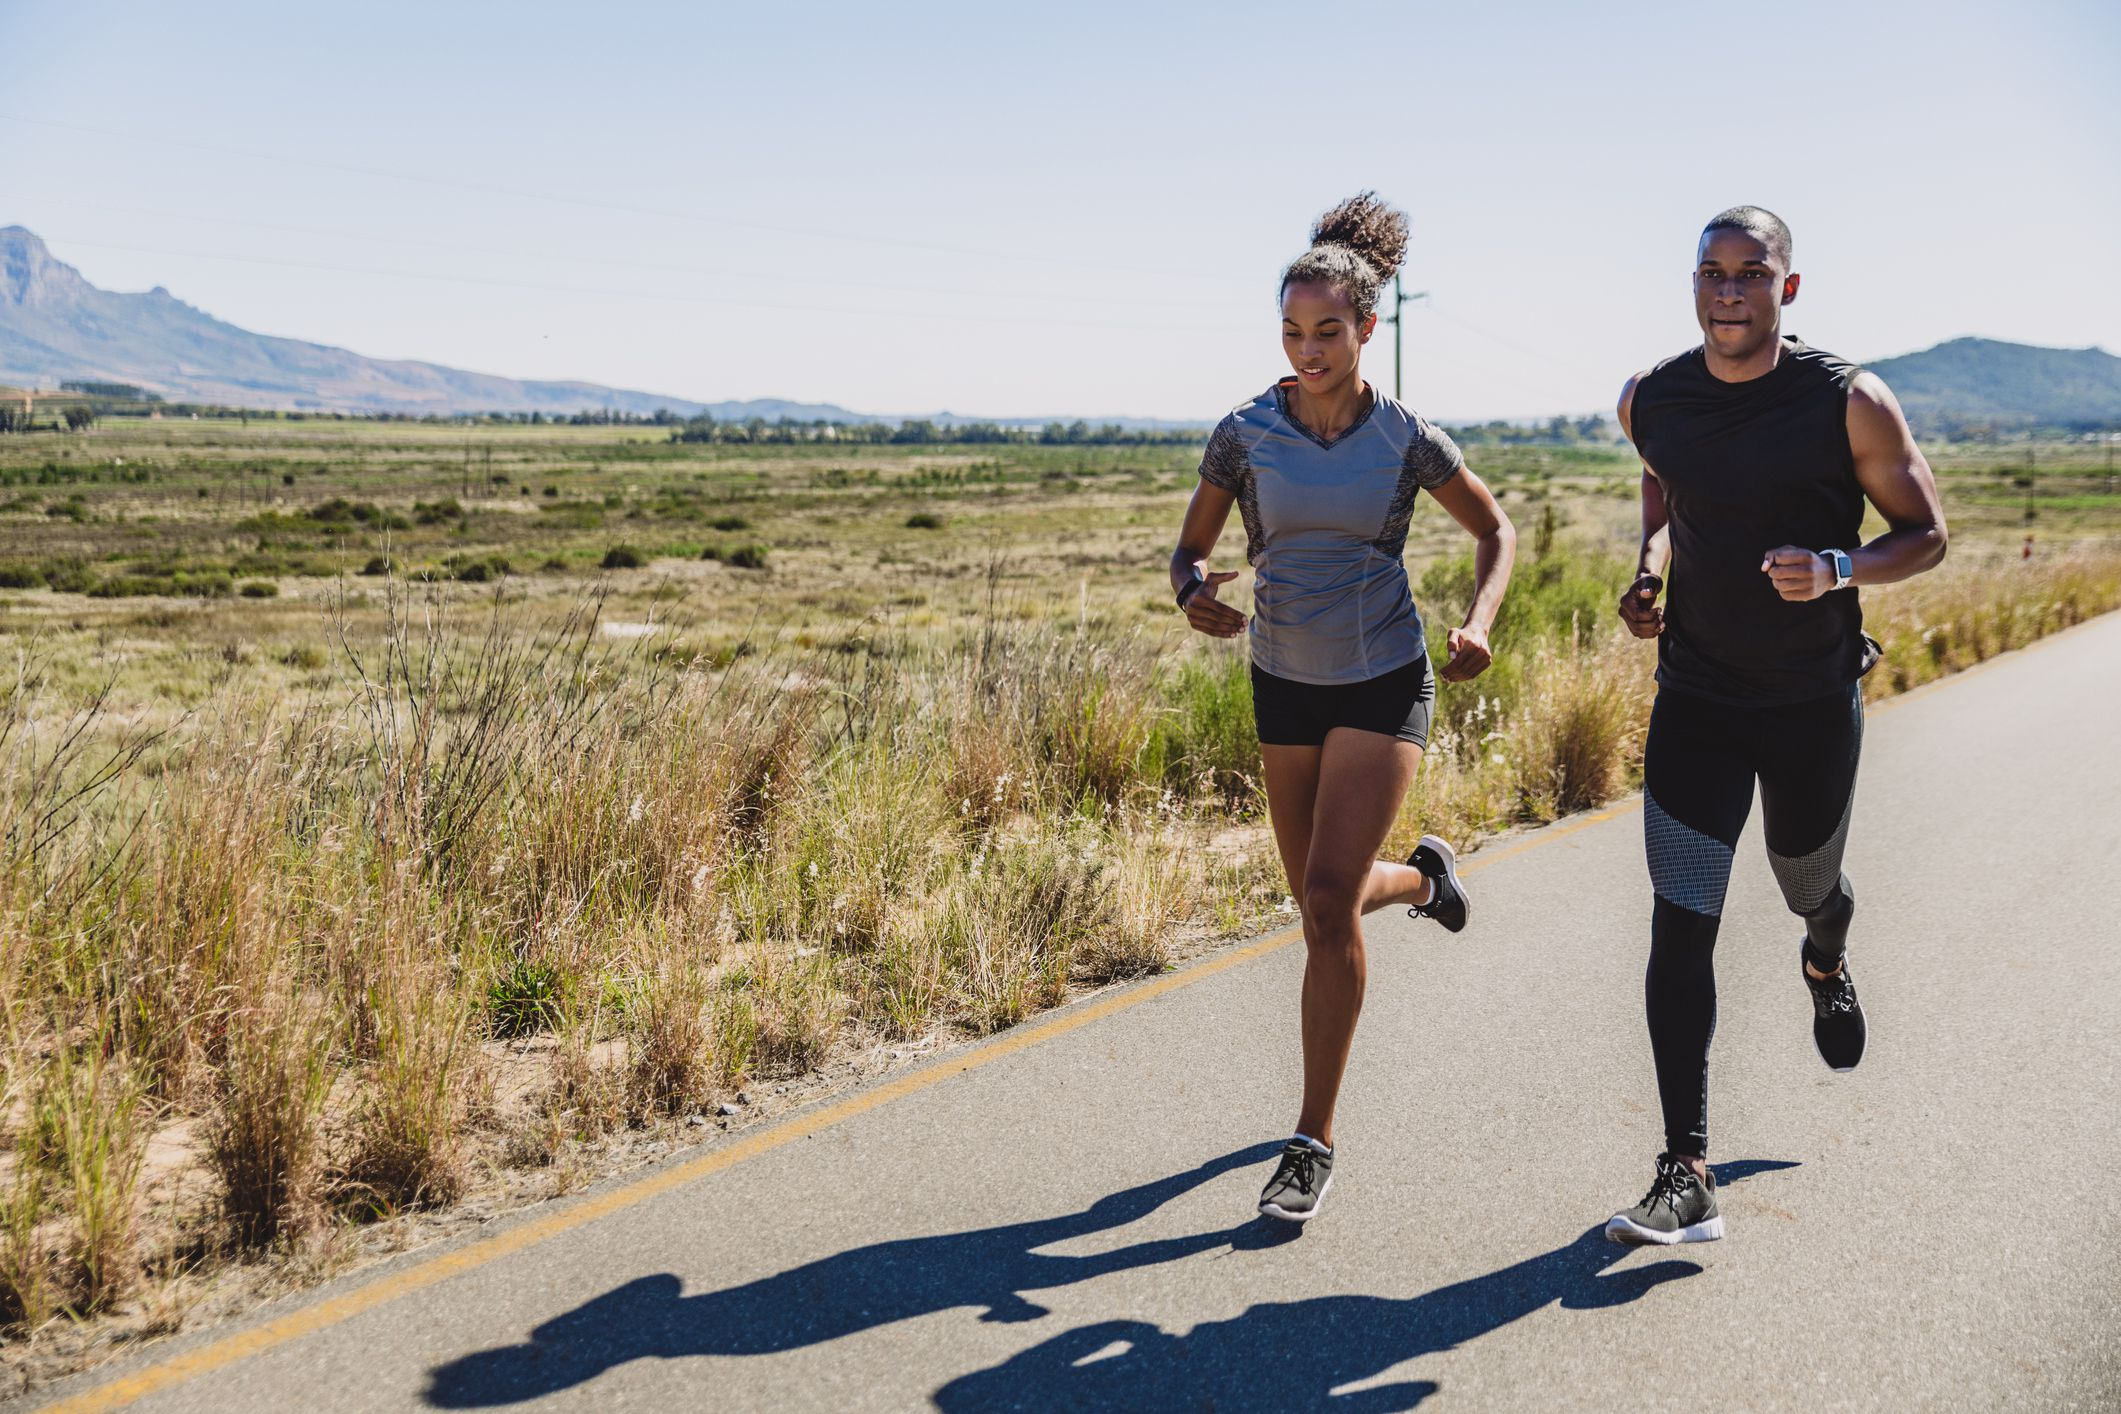 8 Tips for Running Alone Safely